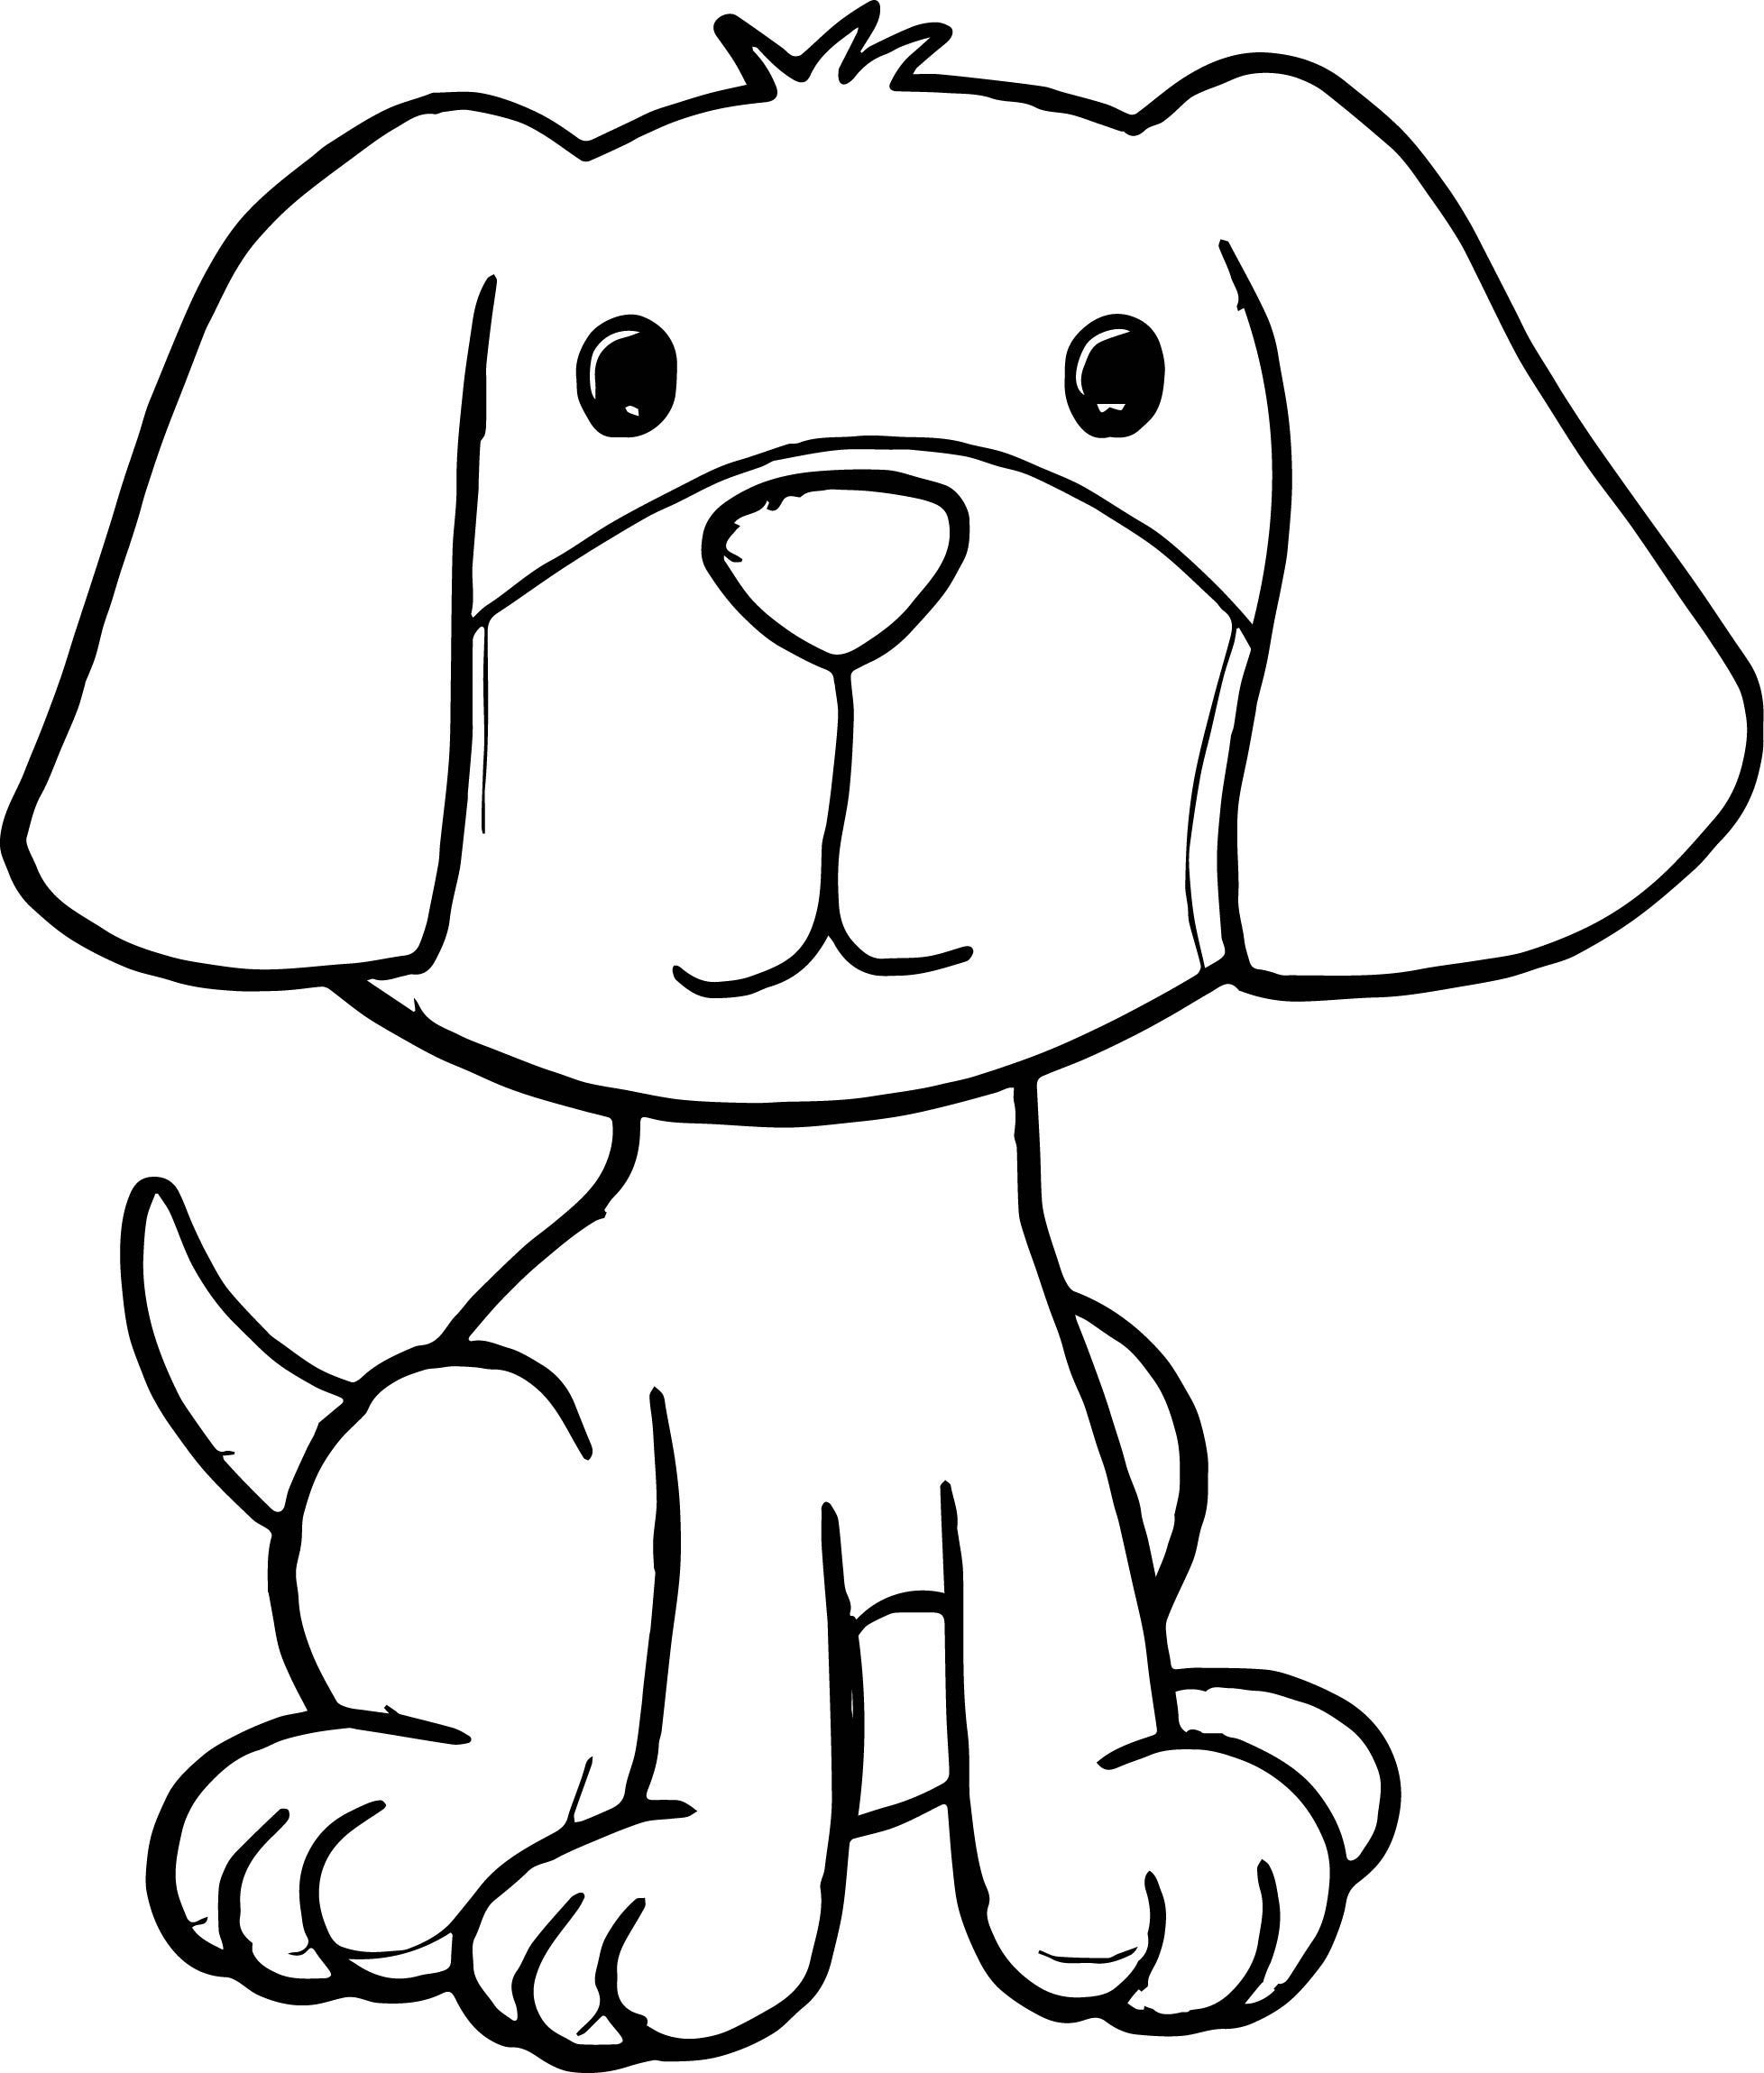 Cool Puppy Pictures Of Cute Cartoon Puppies Dog Puppy Coloring Page Coolpicturesofpuppies Puppy Cartoon Puppy Coloring Pages Dog Coloring Page